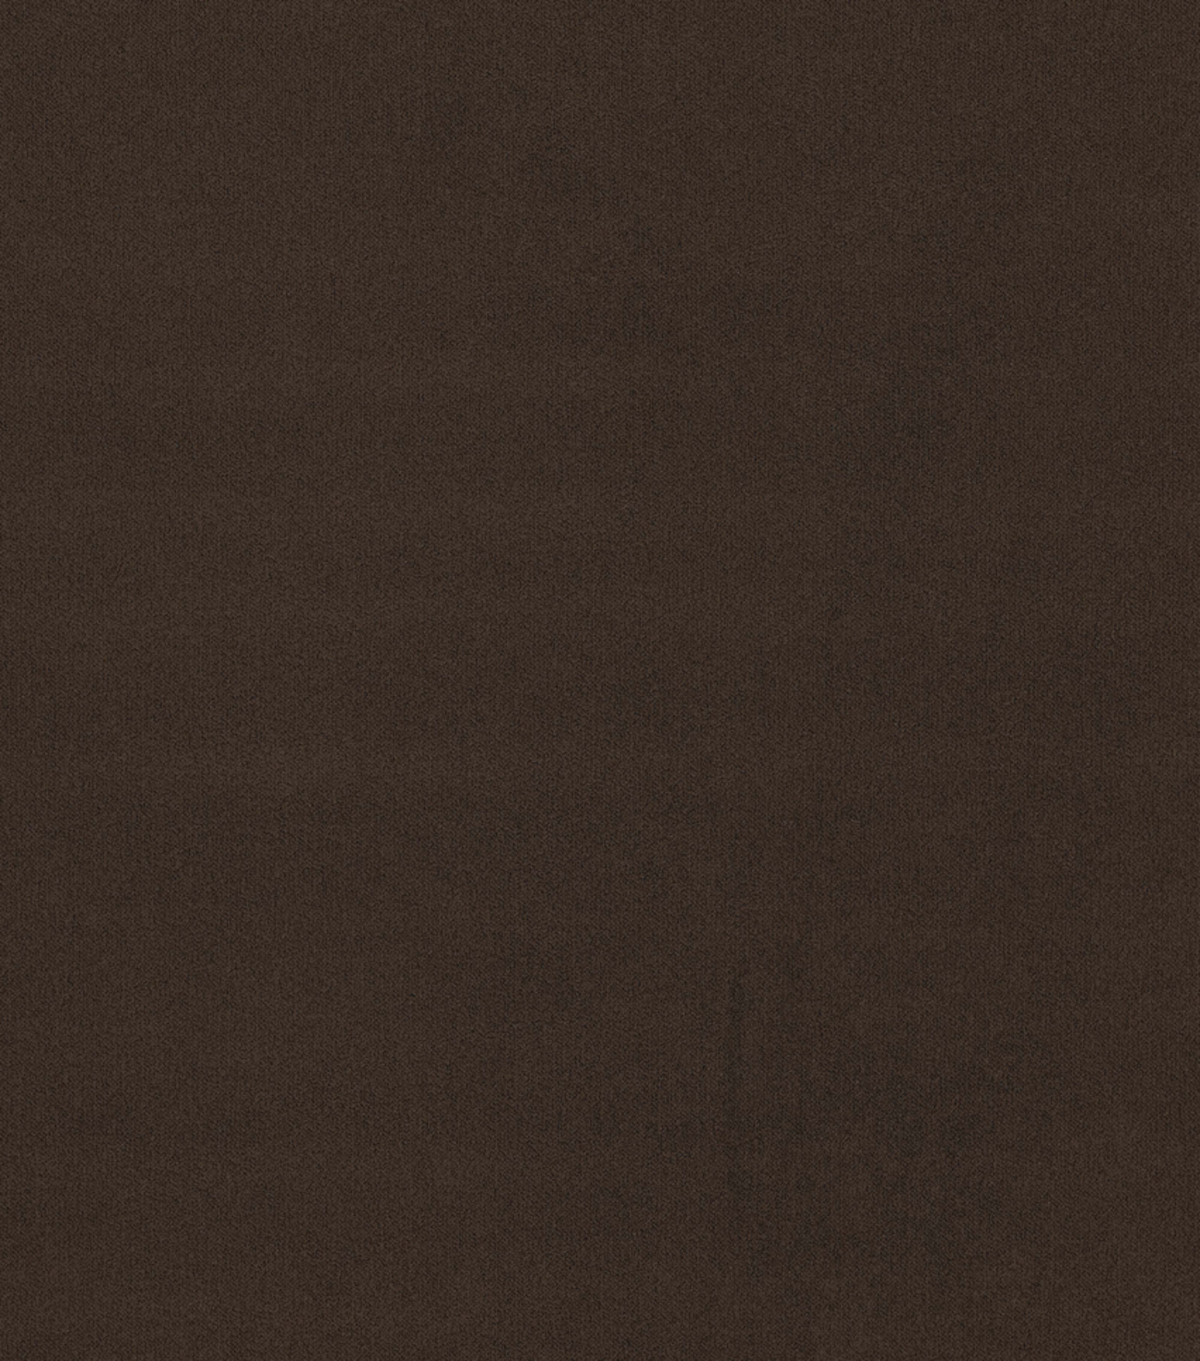 Home Decor 8\u0022x8\u0022 Fabric Swatch-Sedona Mahogany